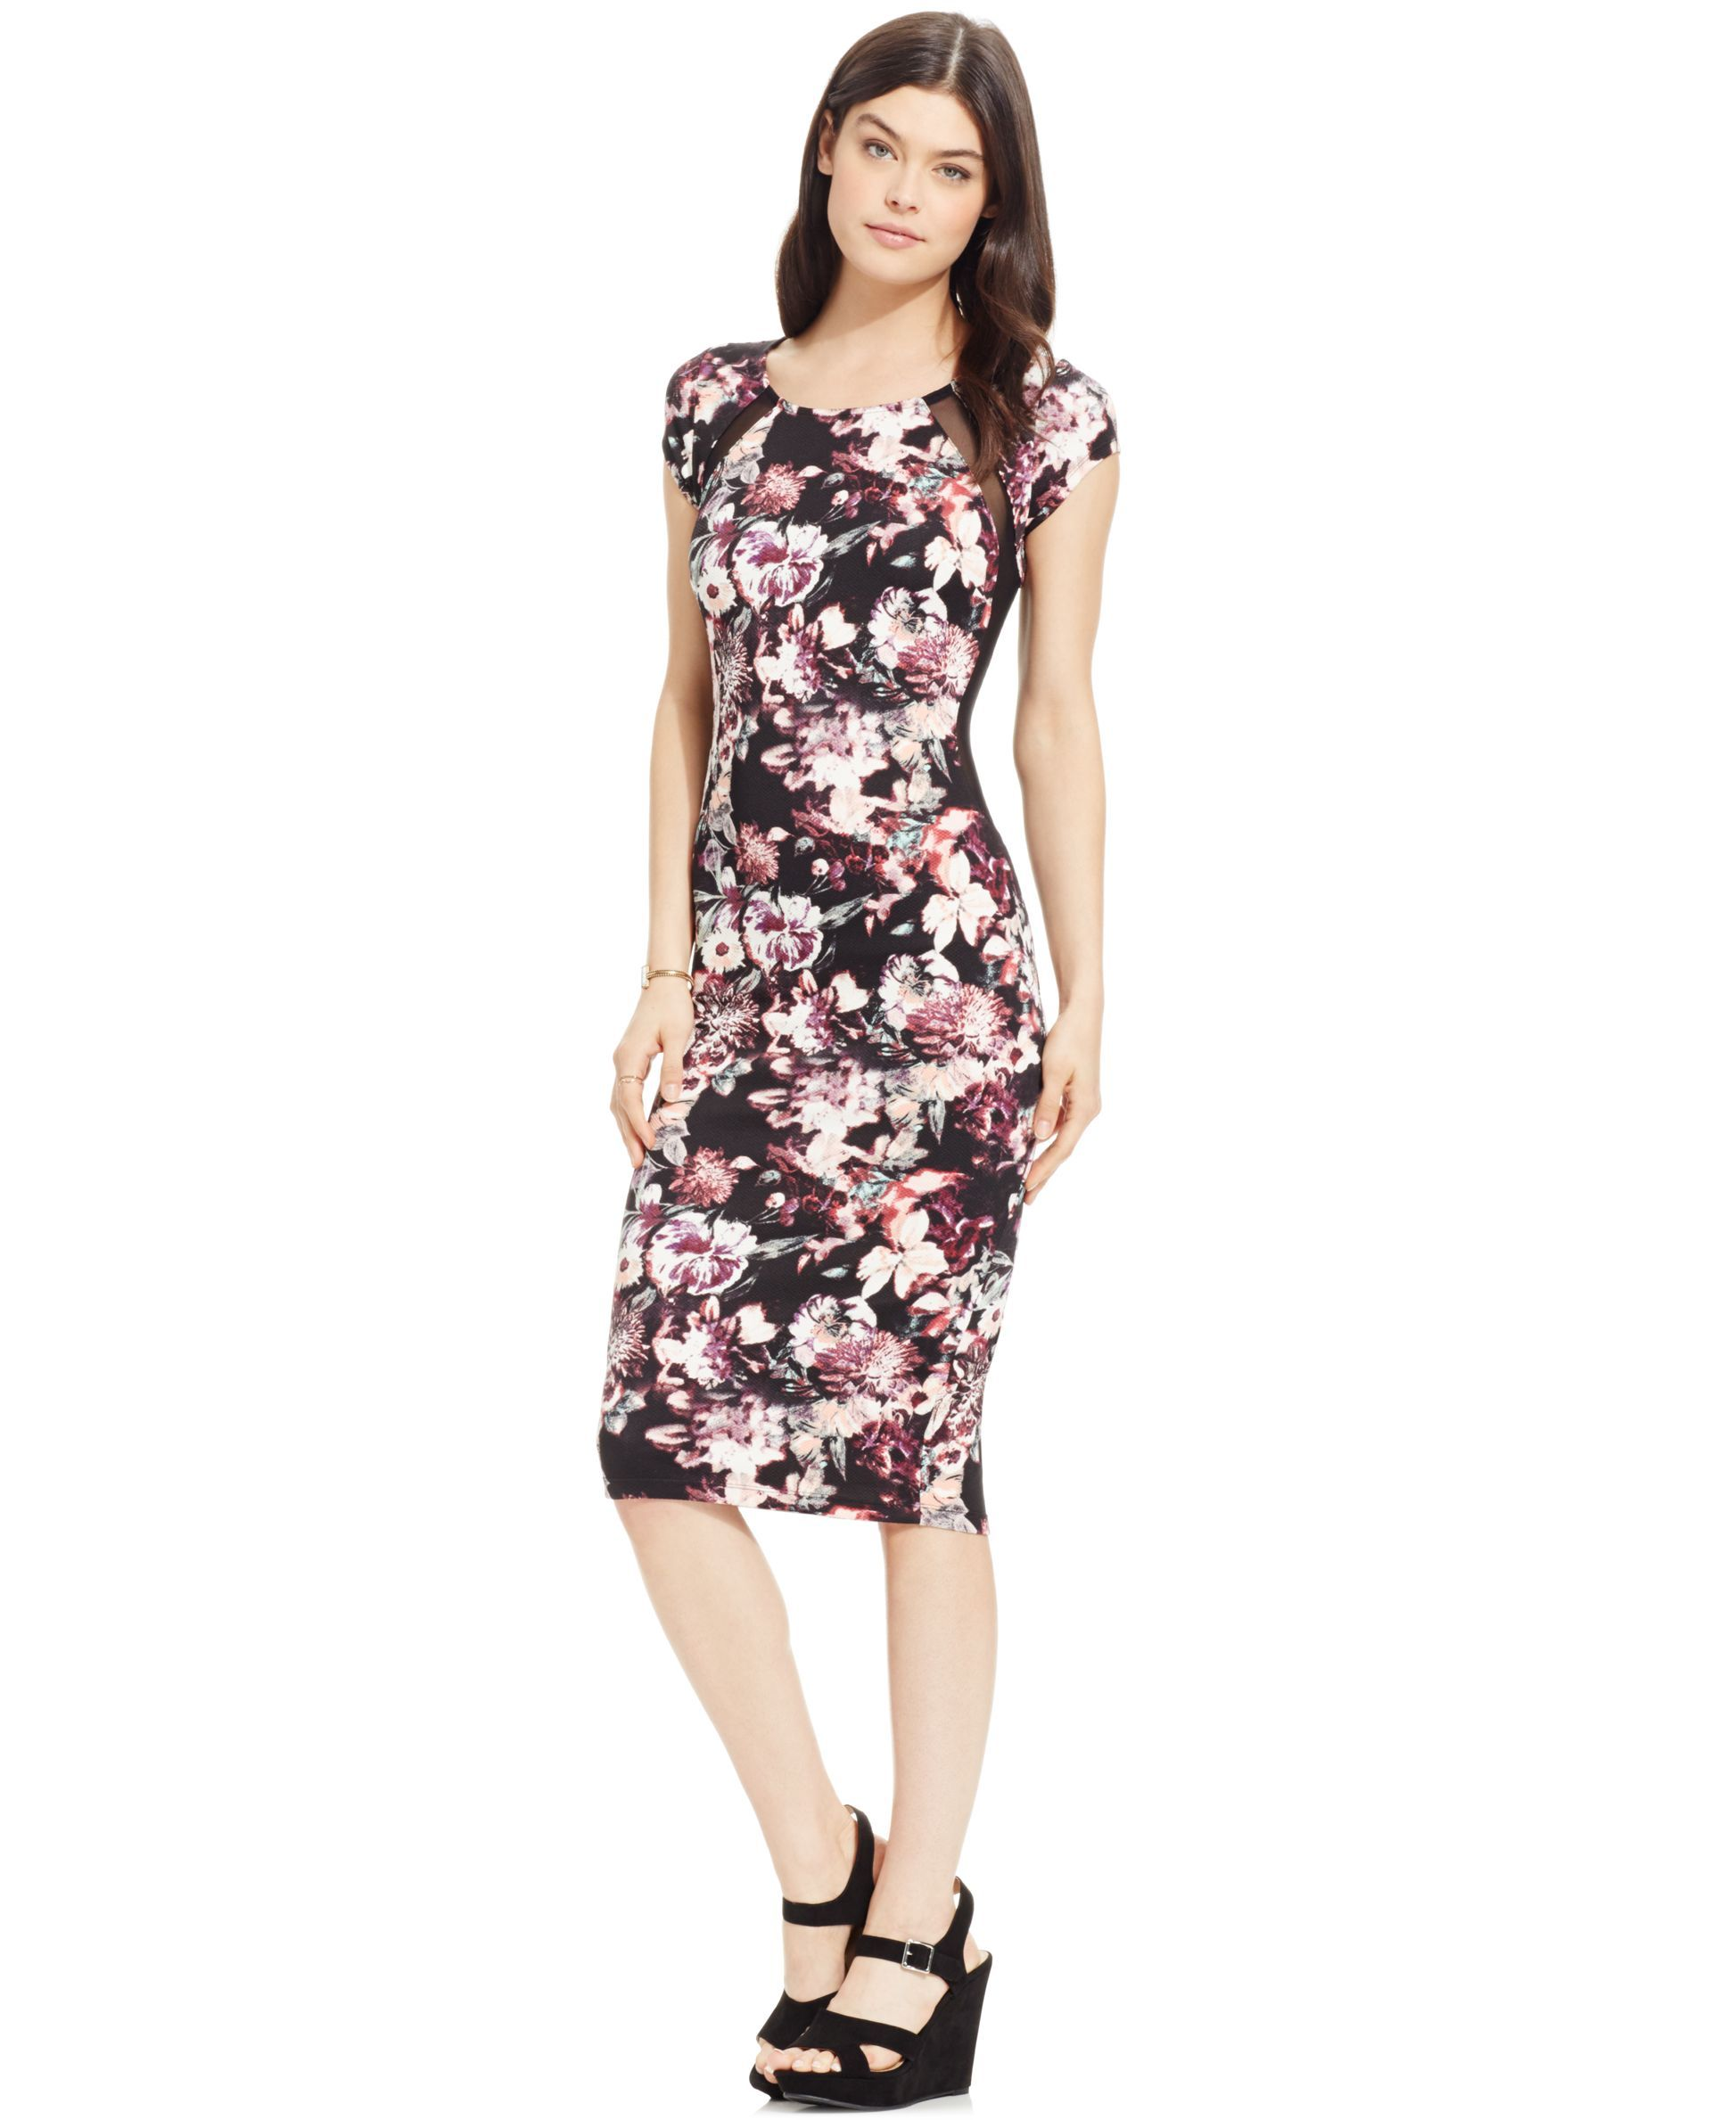 Material Girl Juniors' Printed Illusion-Detail Bodycon Dress, Only at Macy's